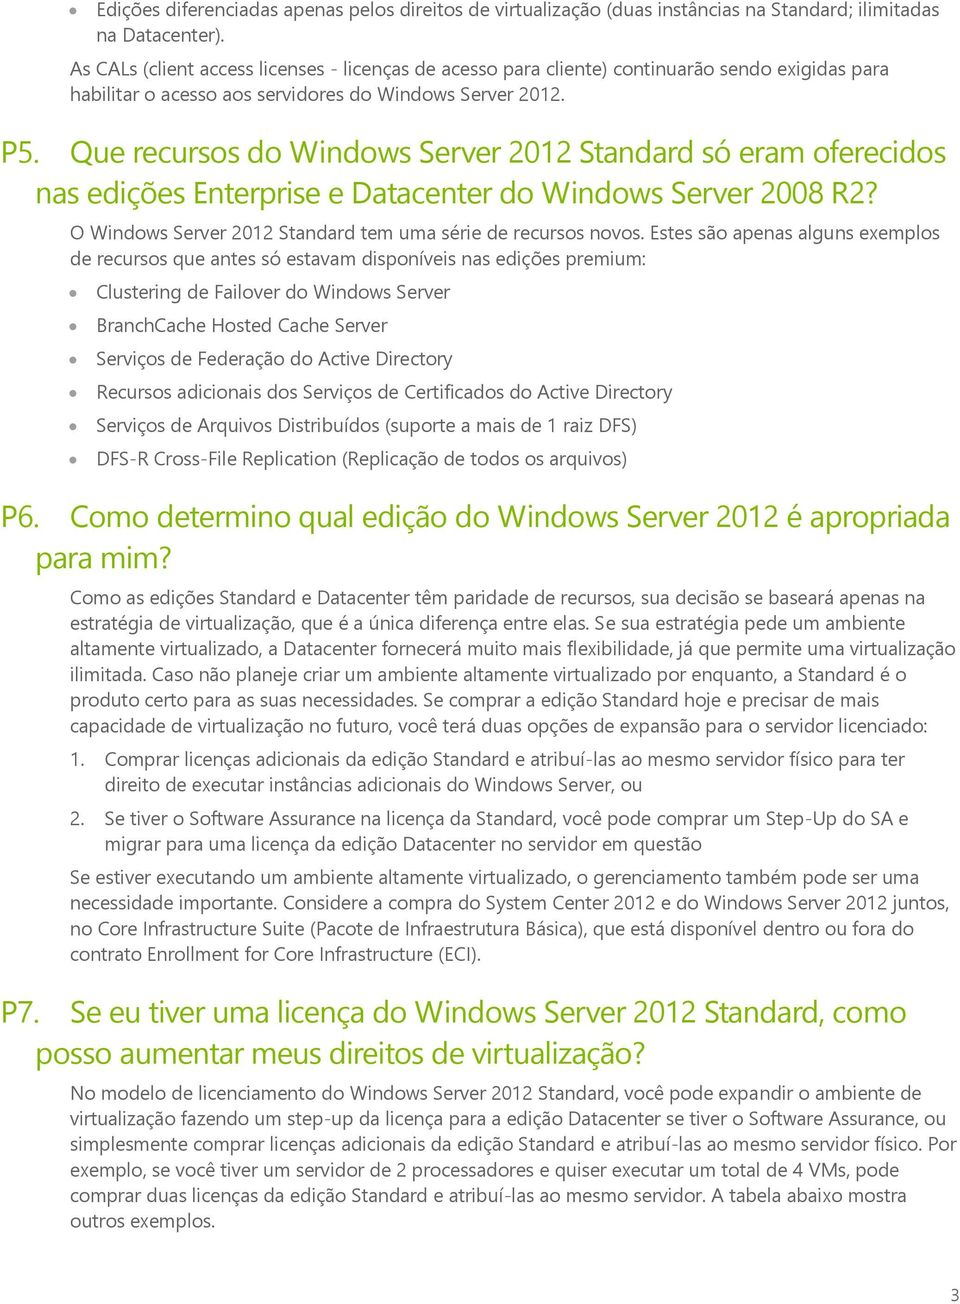 Que recursos do Windows Server 2012 Standard só eram oferecidos nas edições Enterprise e Datacenter do Windows Server 2008 R2? O Windows Server 2012 Standard tem uma série de recursos novos.